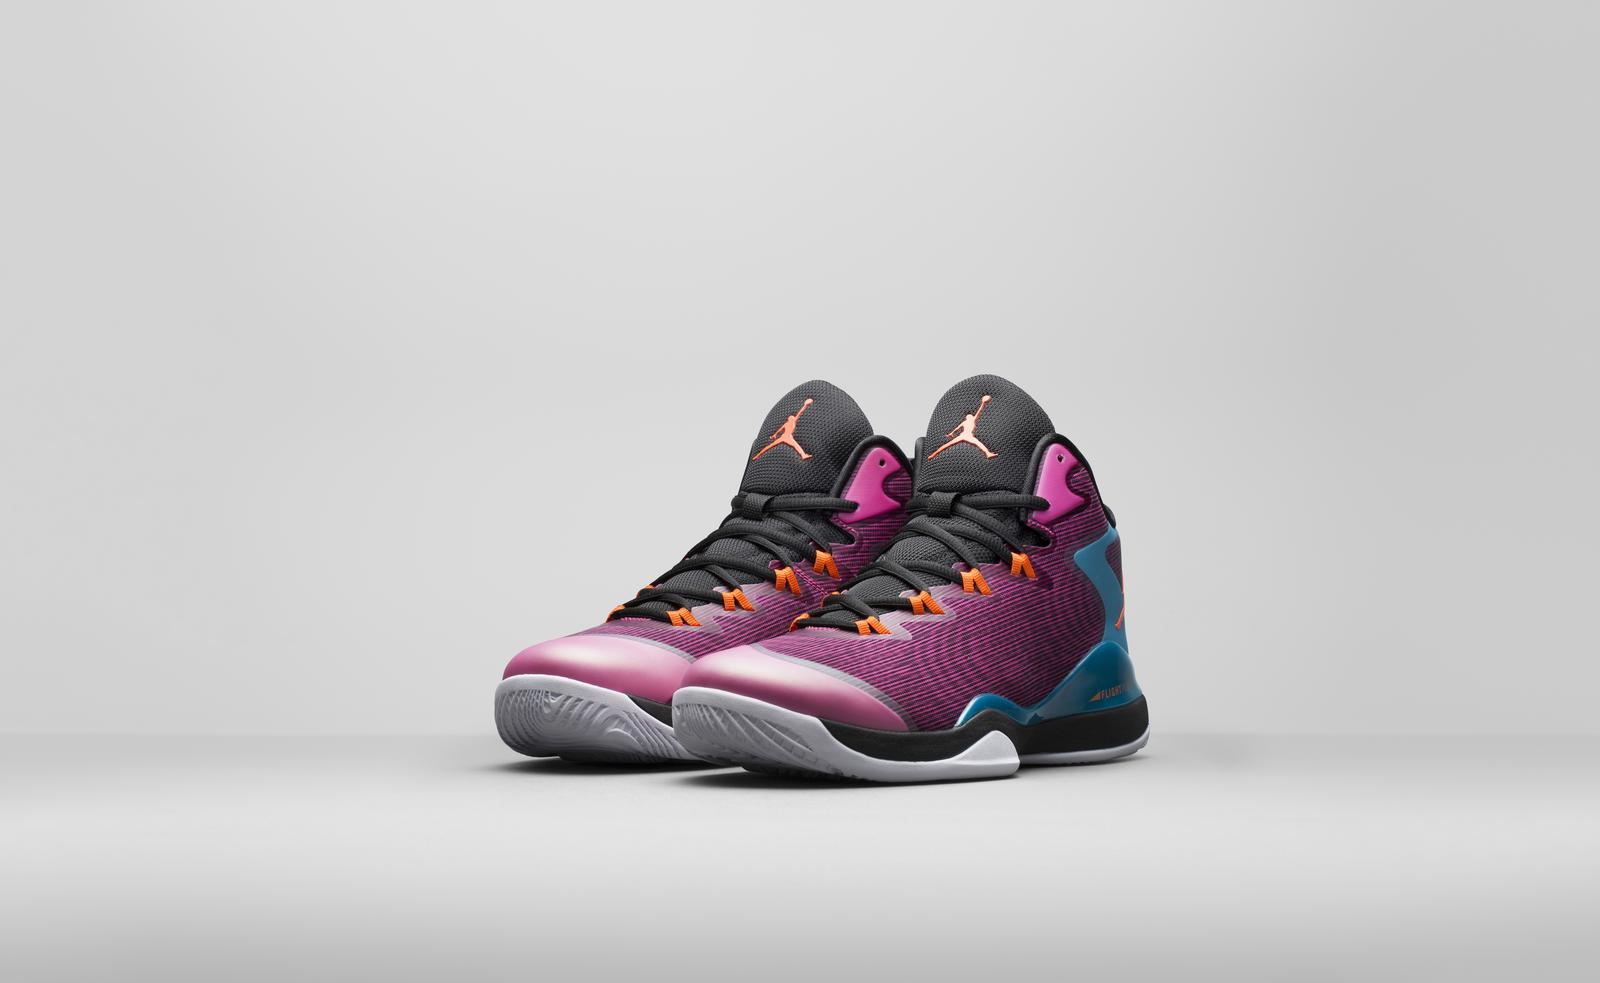 6018f833bf7f1 Jordan Super.Fly 3 Performance Review » Starting5online